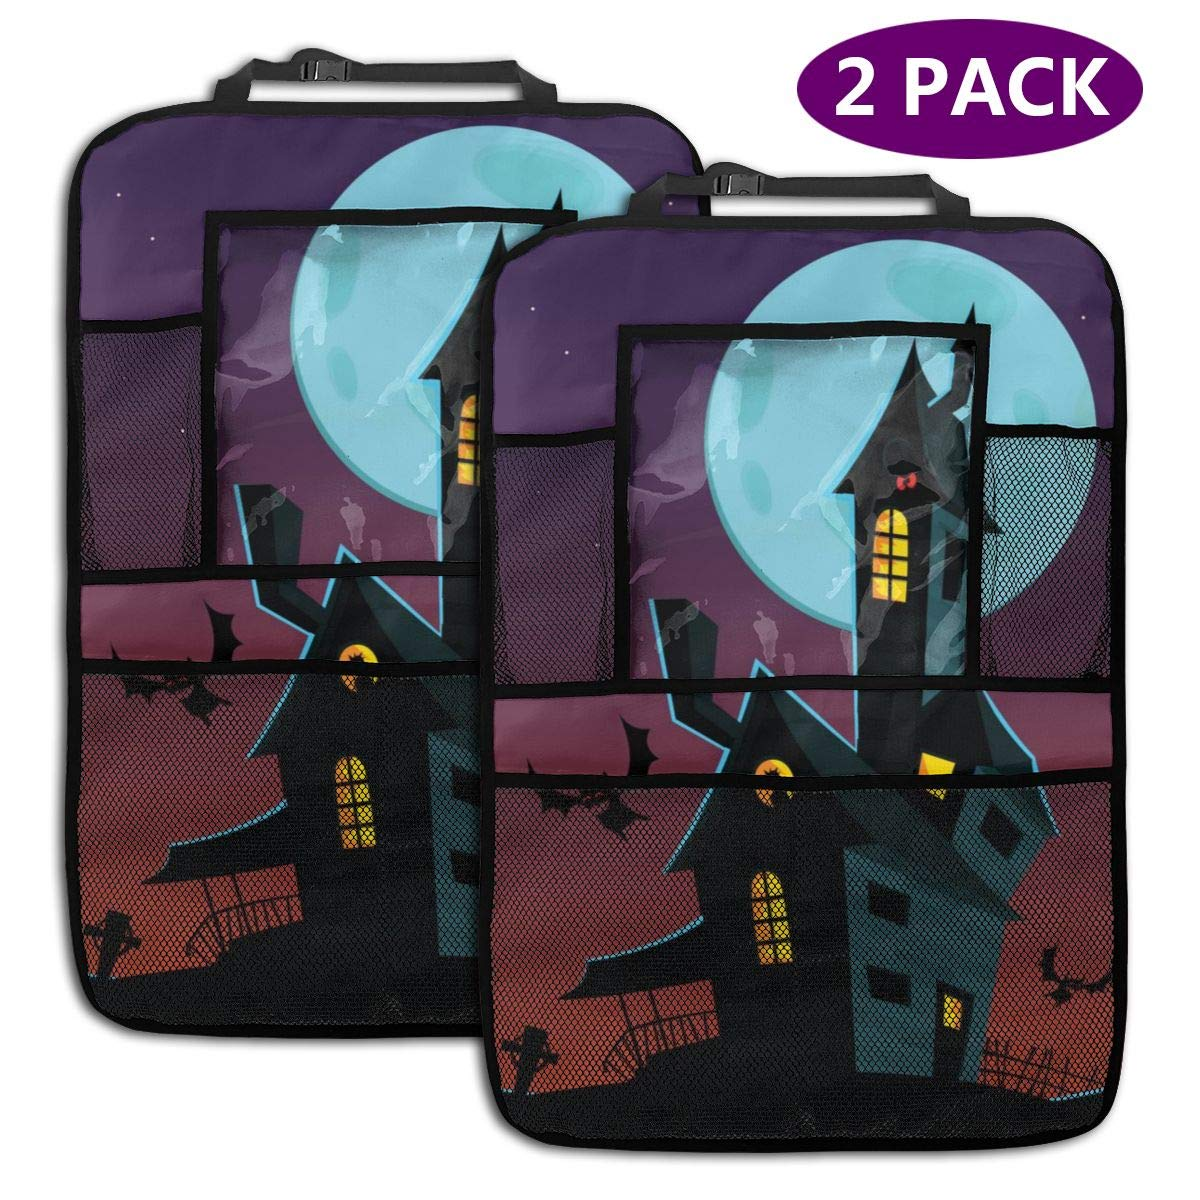 Cary Old Haunted House 2 Pack Car Seat Organizer Kick Mat Protector Durable Quality Seat Covers Protectors by LZQEEN